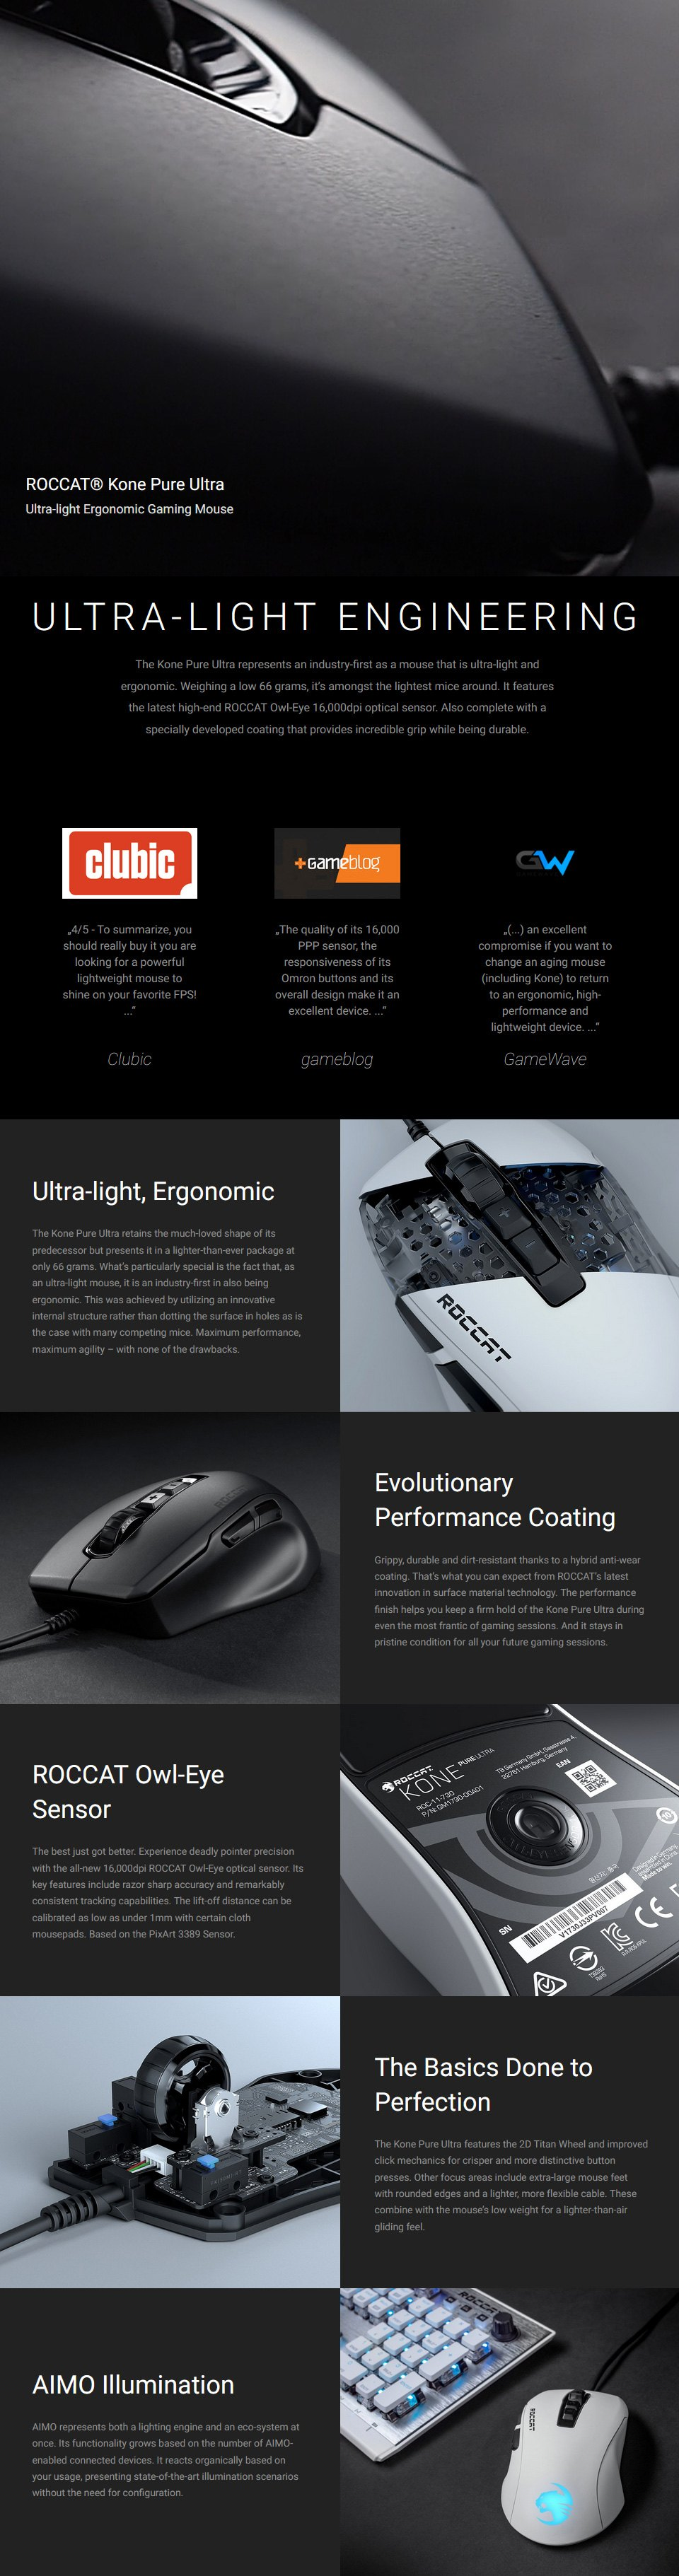 Roccat Kone Pure Ultra Gaming Mouse White features